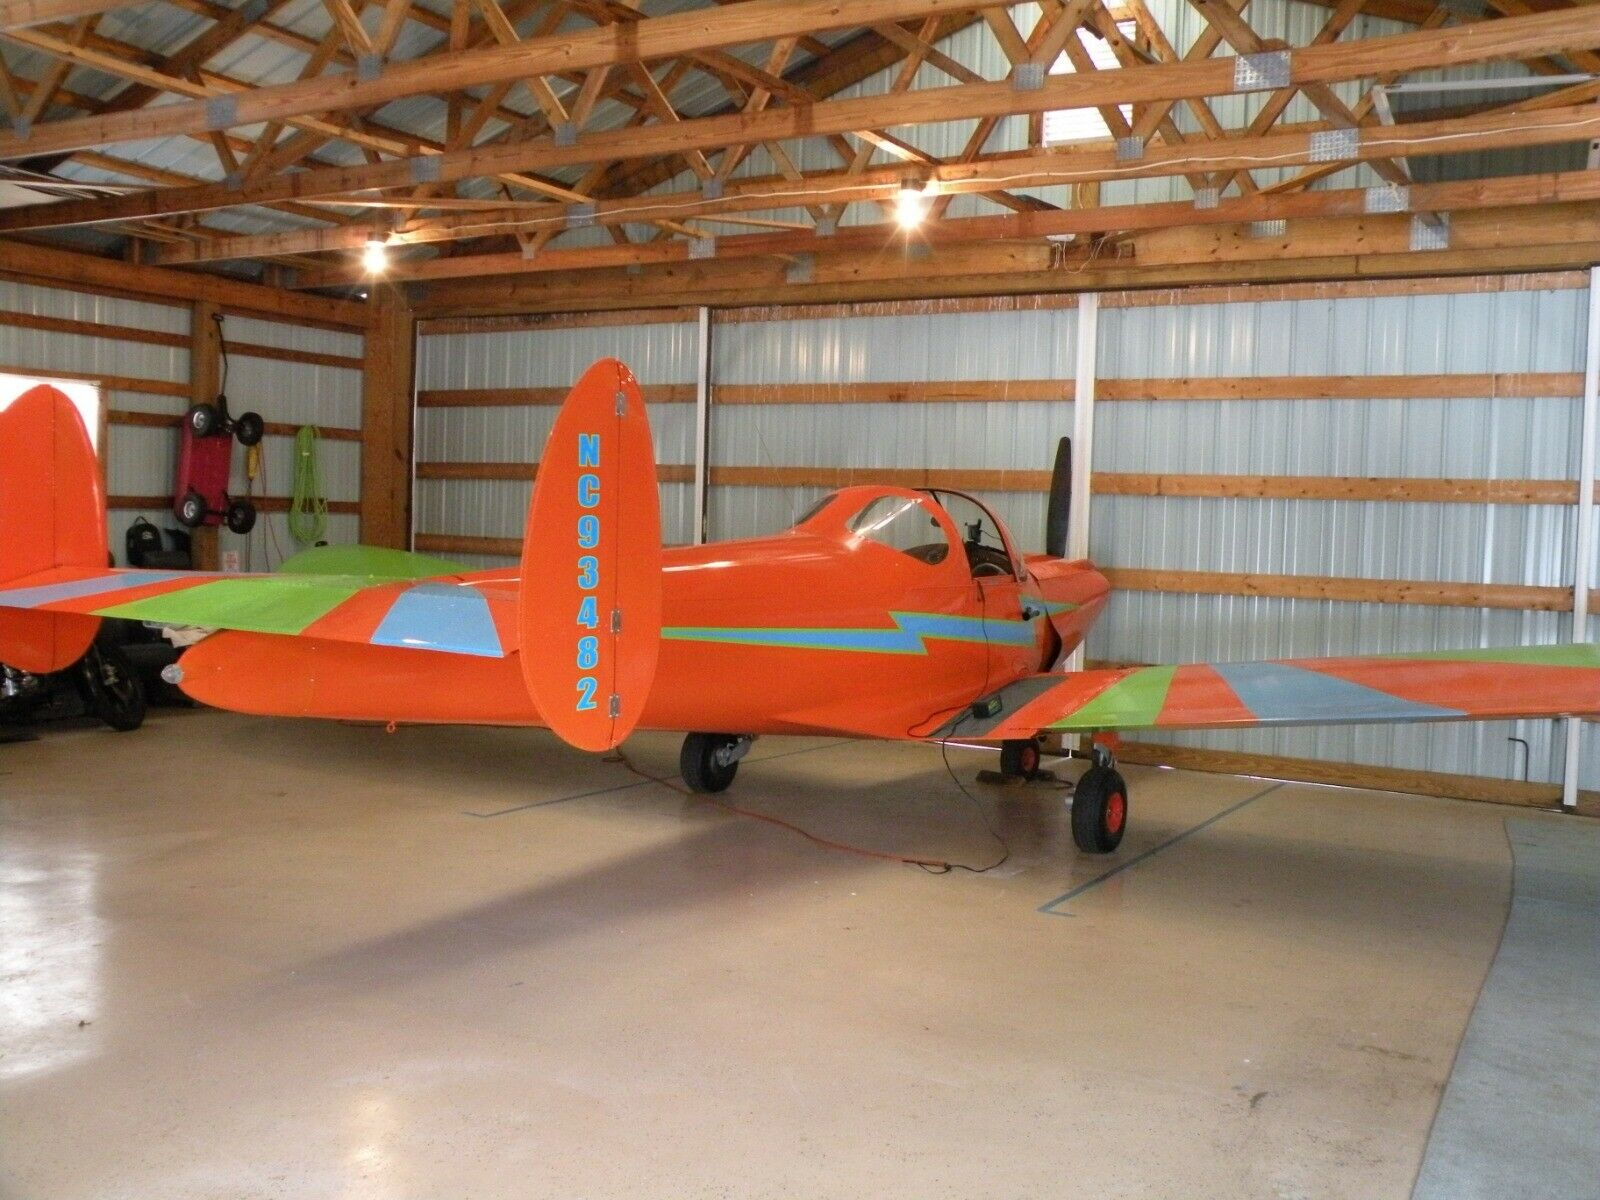 Awesome 1946 Ercoupe 415 C Light Sport AIRCRAFT